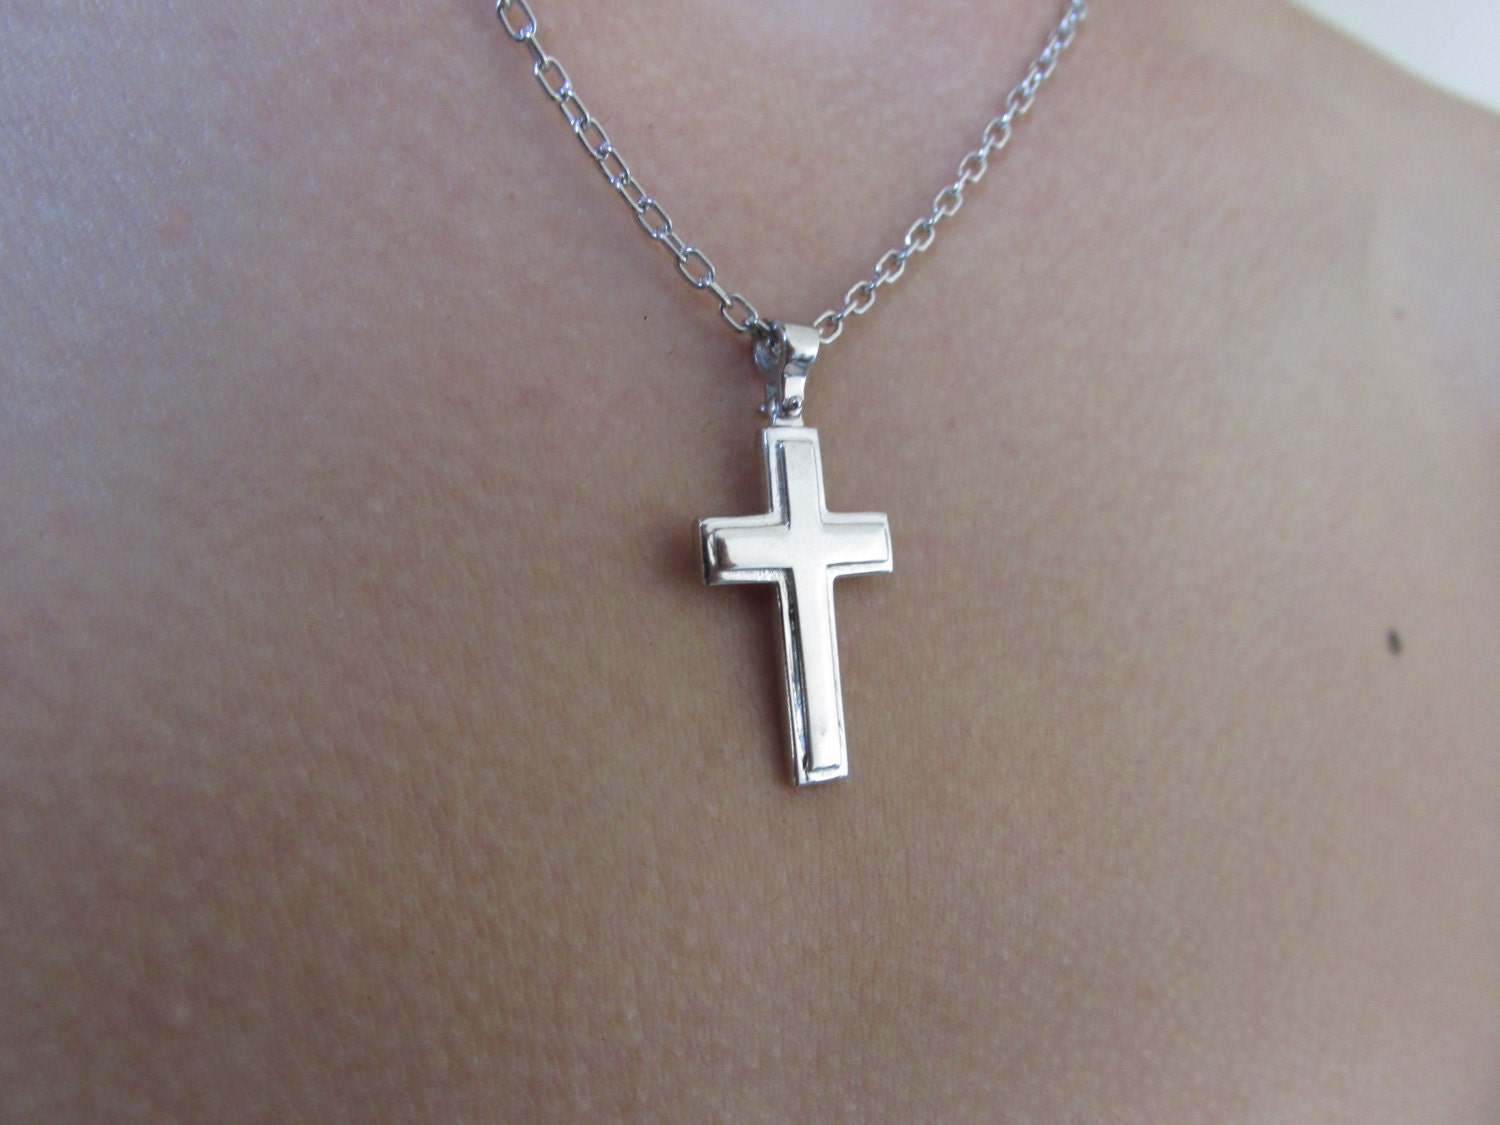 cross necklace silver cross necklace mens cross necklace. Black Bedroom Furniture Sets. Home Design Ideas